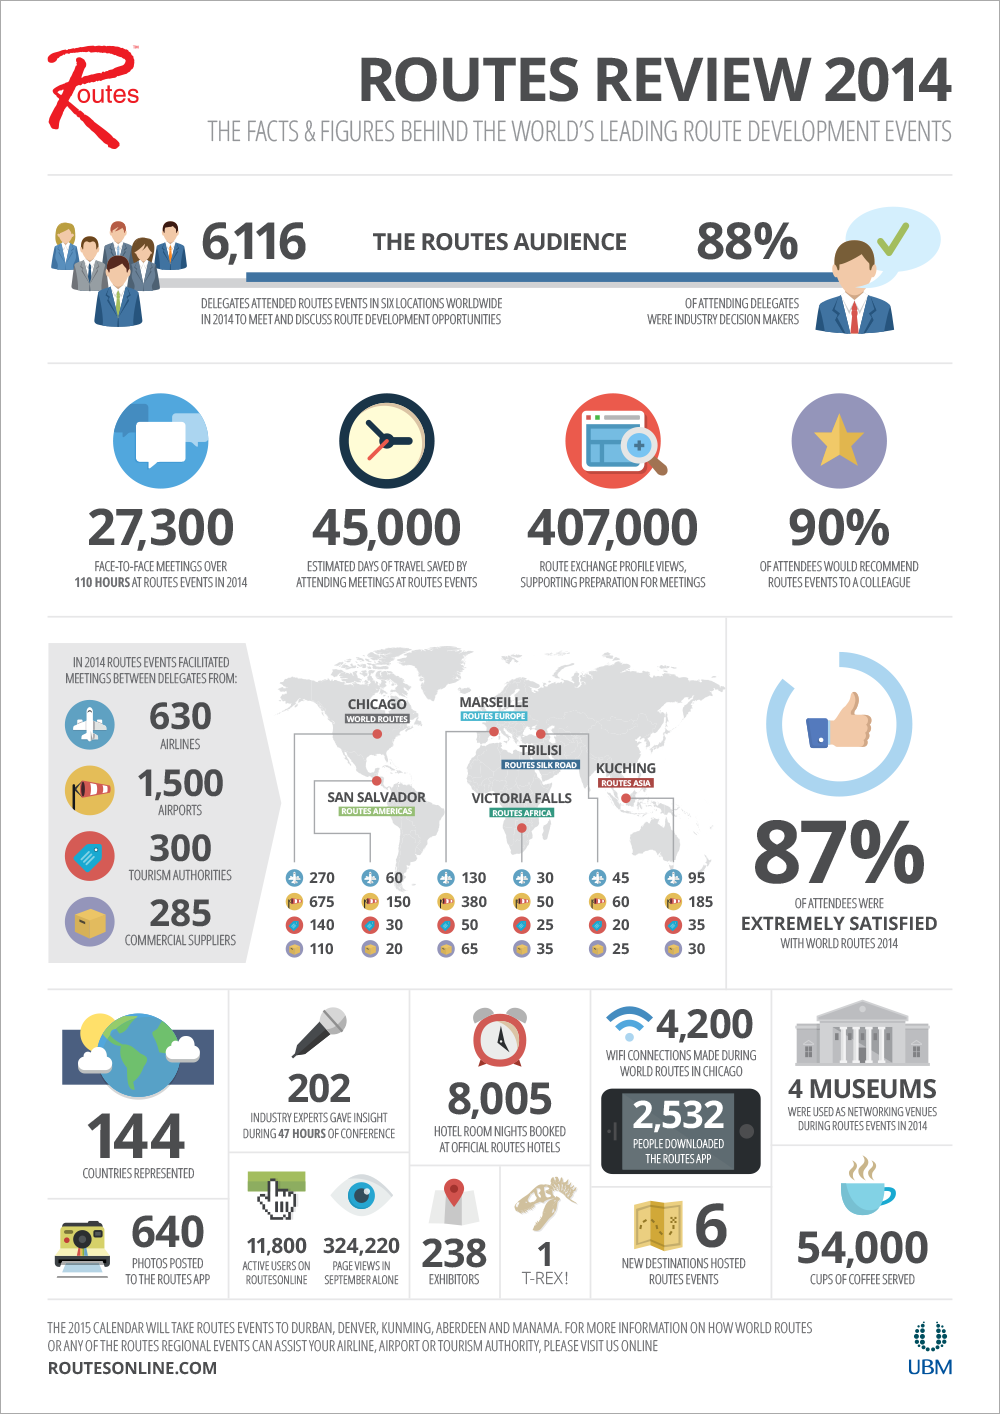 Routes Review 2014 Infographic